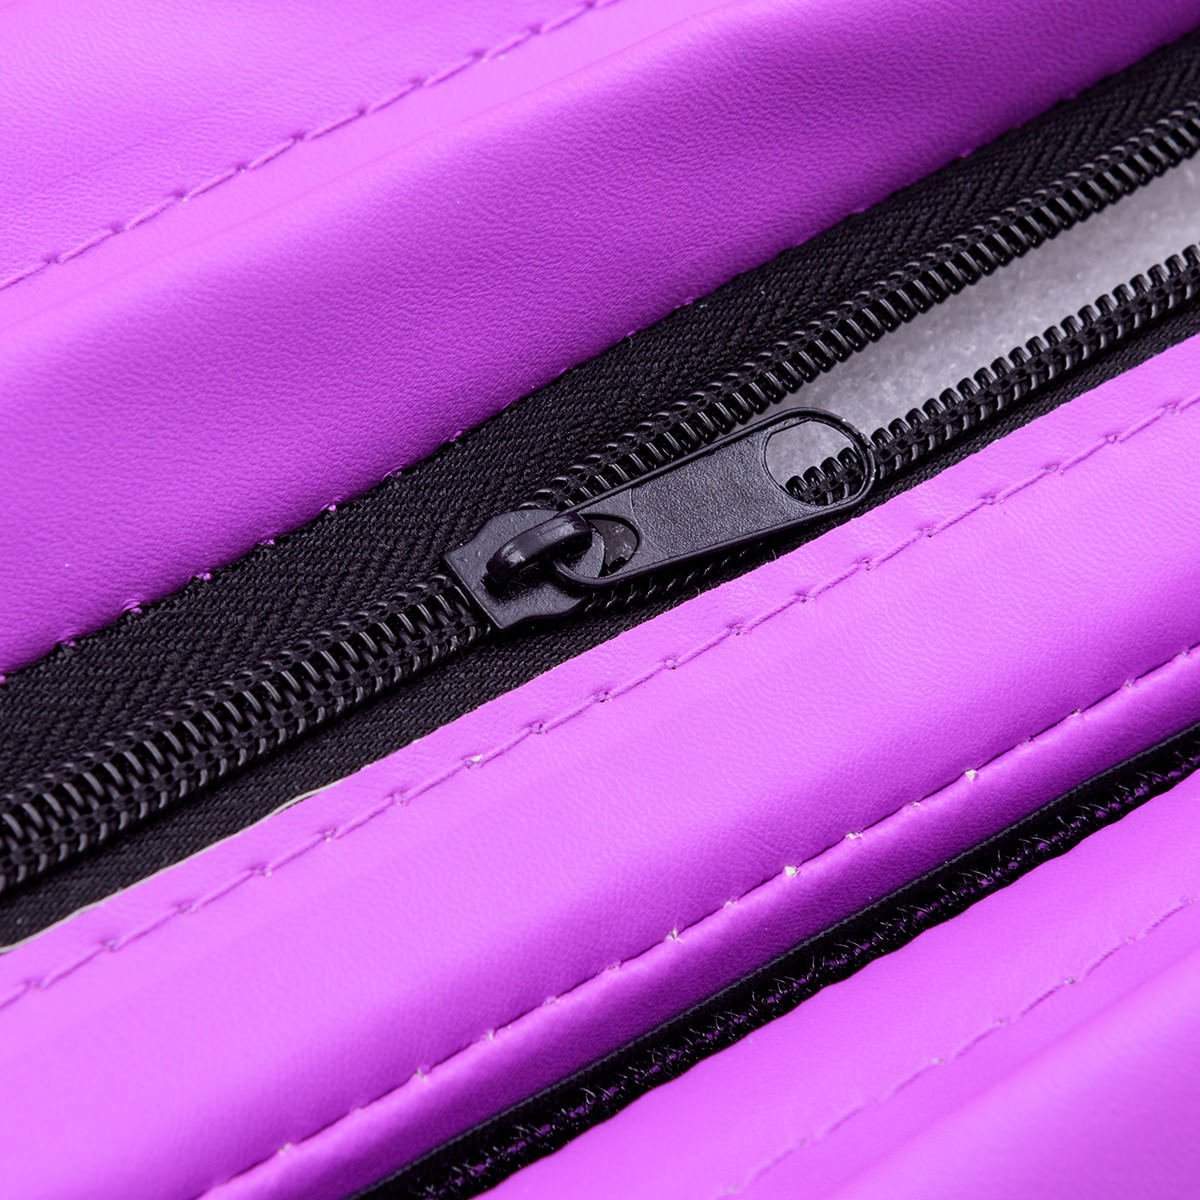 Giantex 4'x10'x2 Gymnastics Mat Thick Folding Panel for Gym Fitness with Hook & Loop Fasteners (Pink/Purple-Small Triangle)